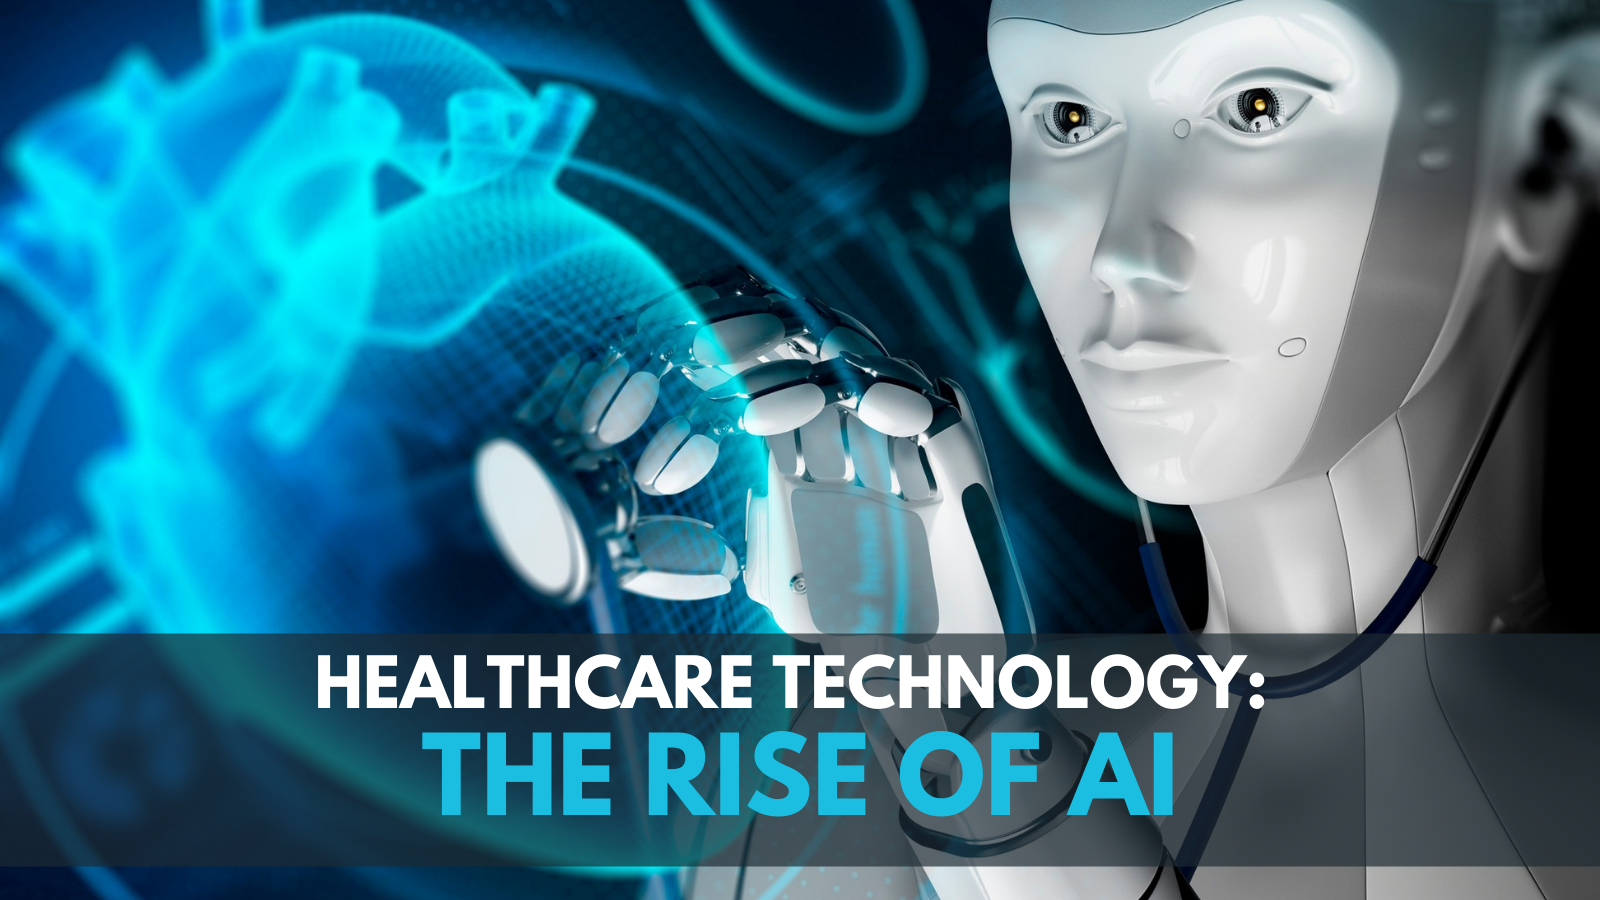 Technology Trends in Healthcare in 2021: The Rise of AI